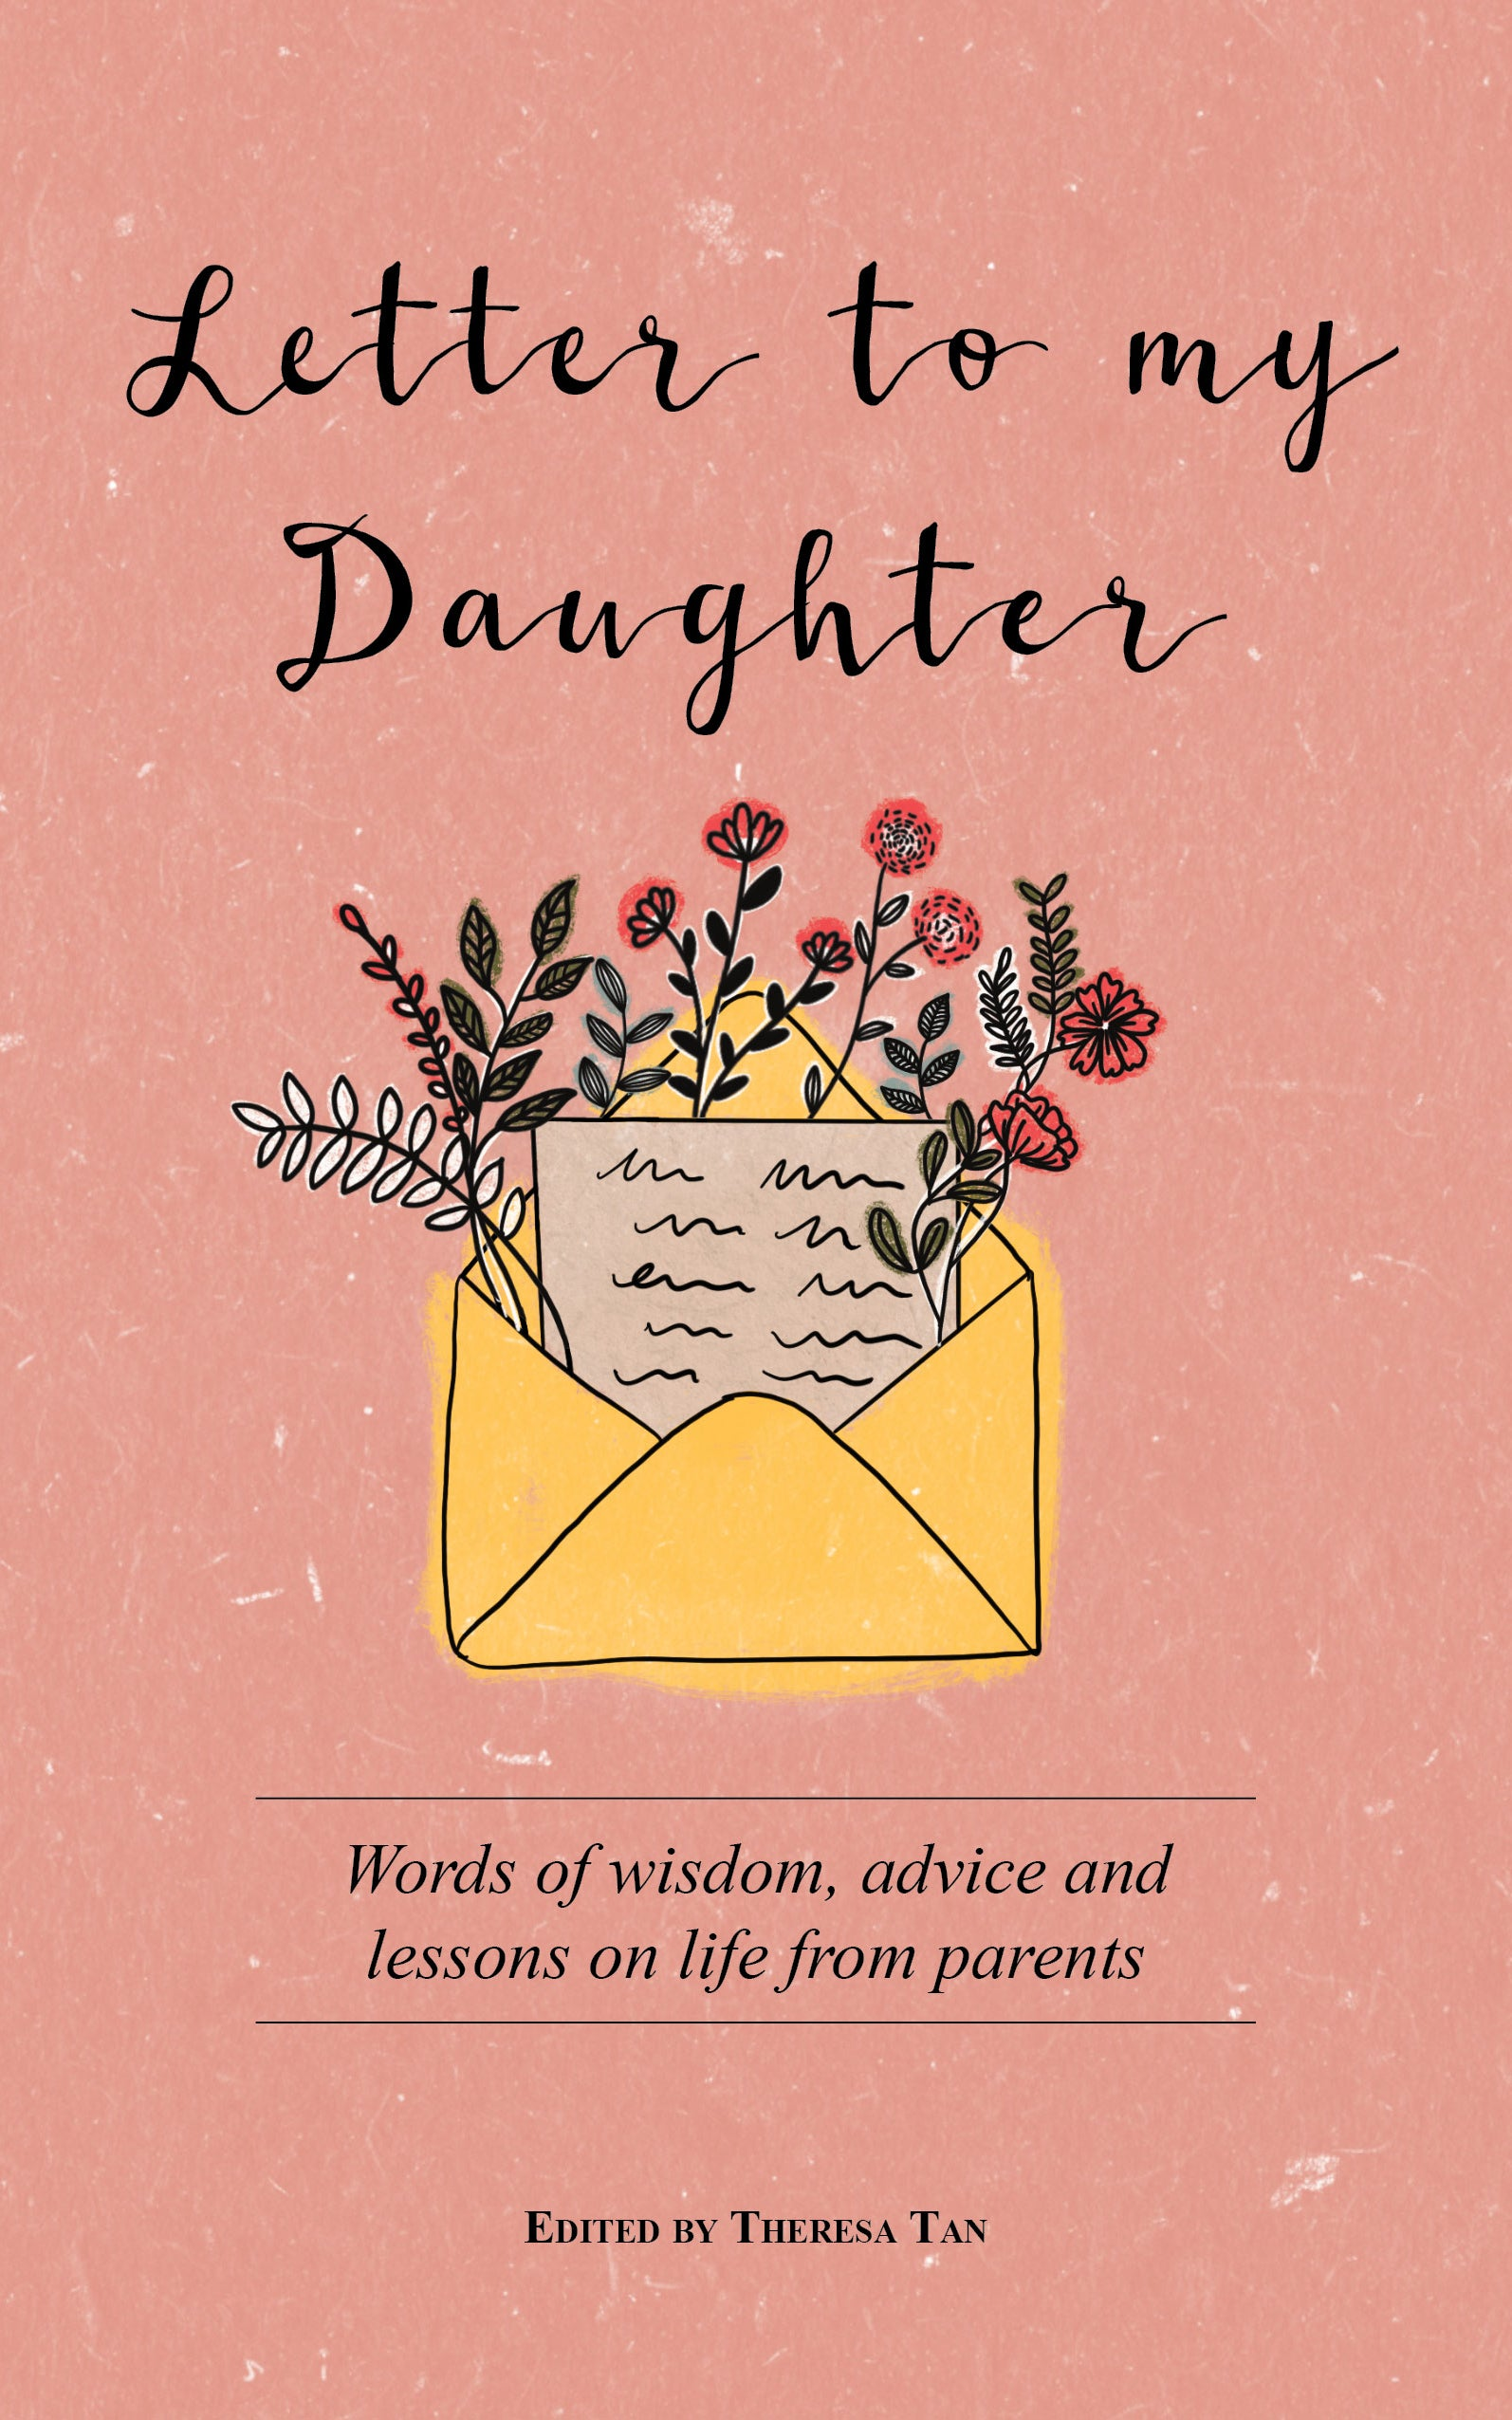 Letter to My Daughter: Words of wisdom, advice and lessons on life from parents